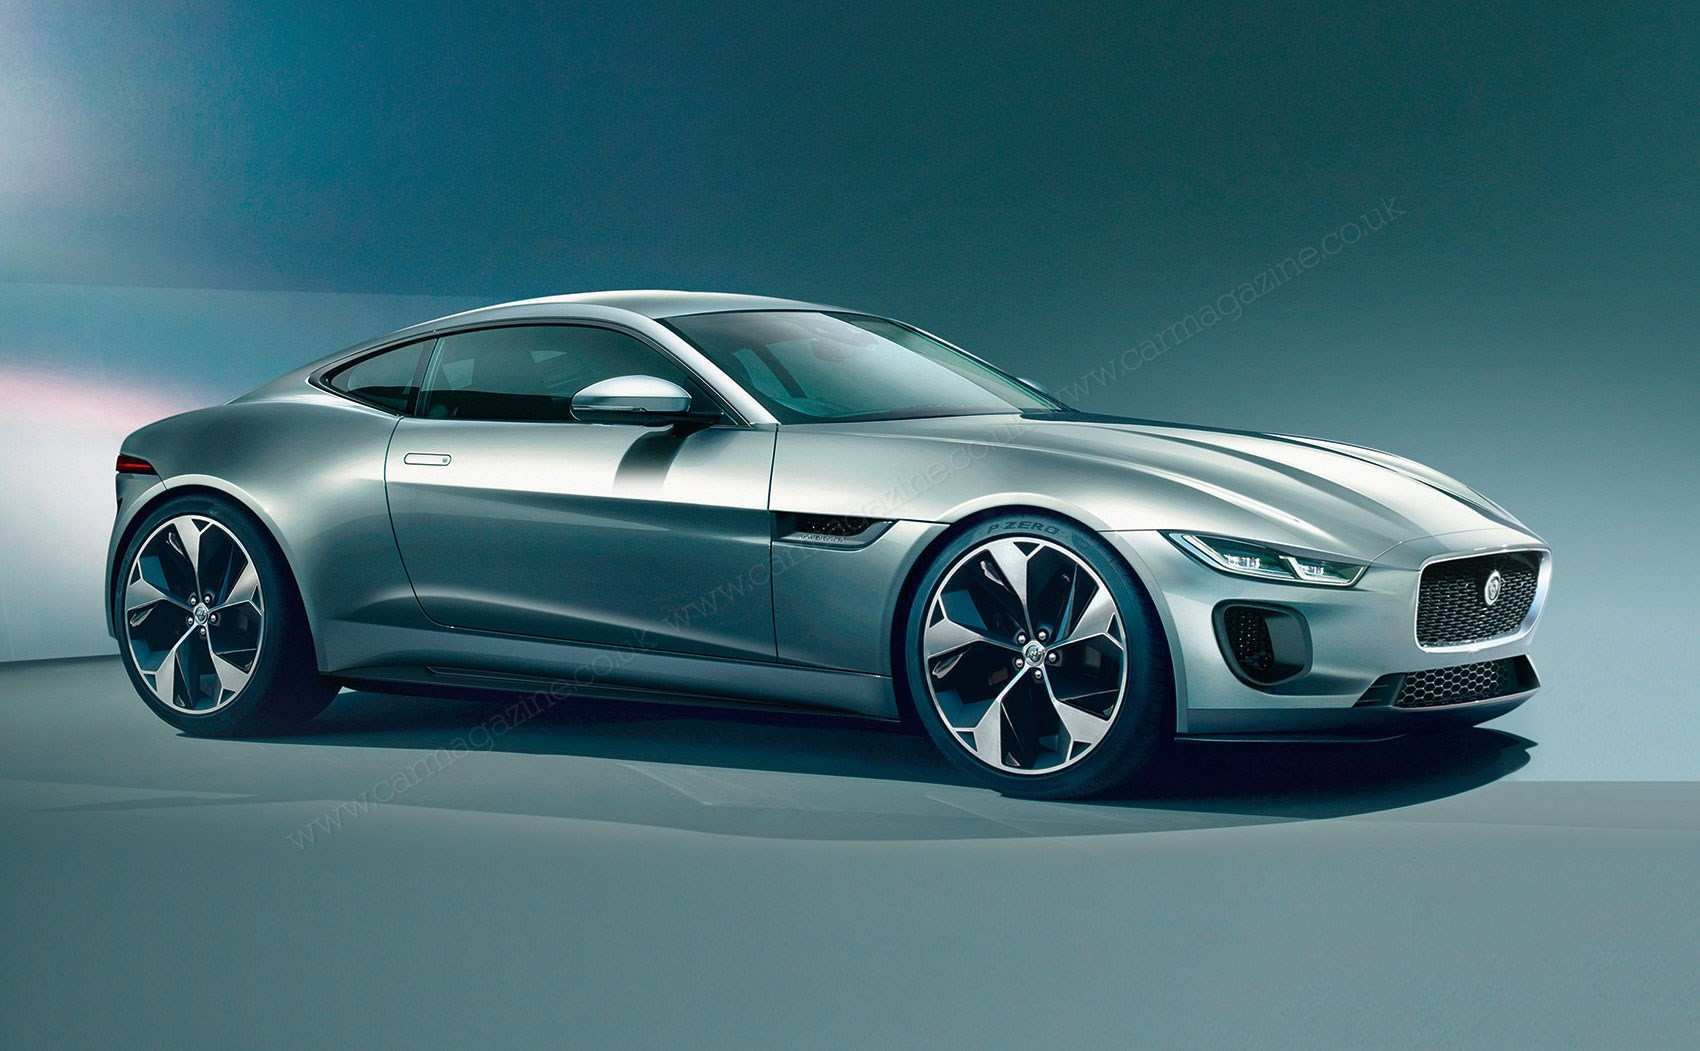 89 All New Jaguar F Type 2020 Spesification by Jaguar F Type 2020